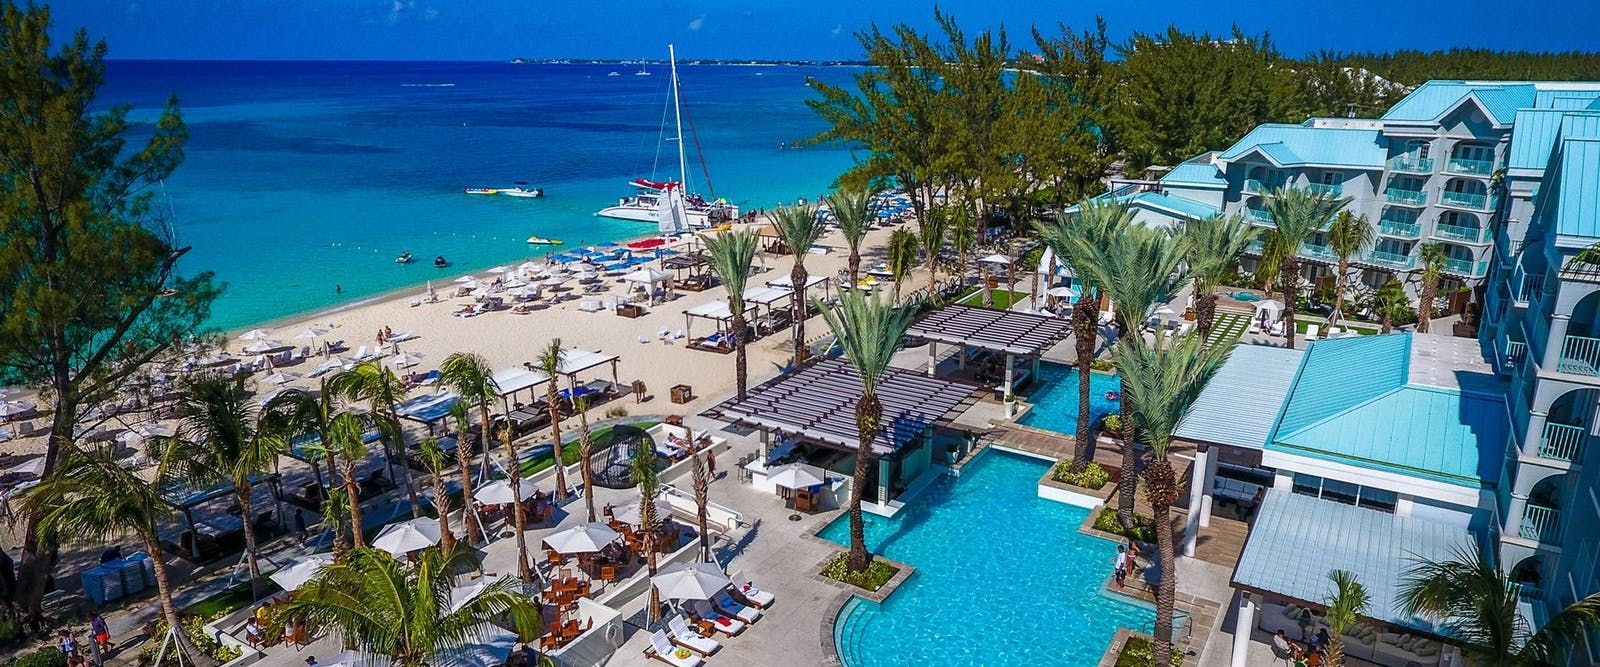 Beach Area at The Westin Grand Cayman Seven Mile Beach Resort & Spa, Cayman Islands